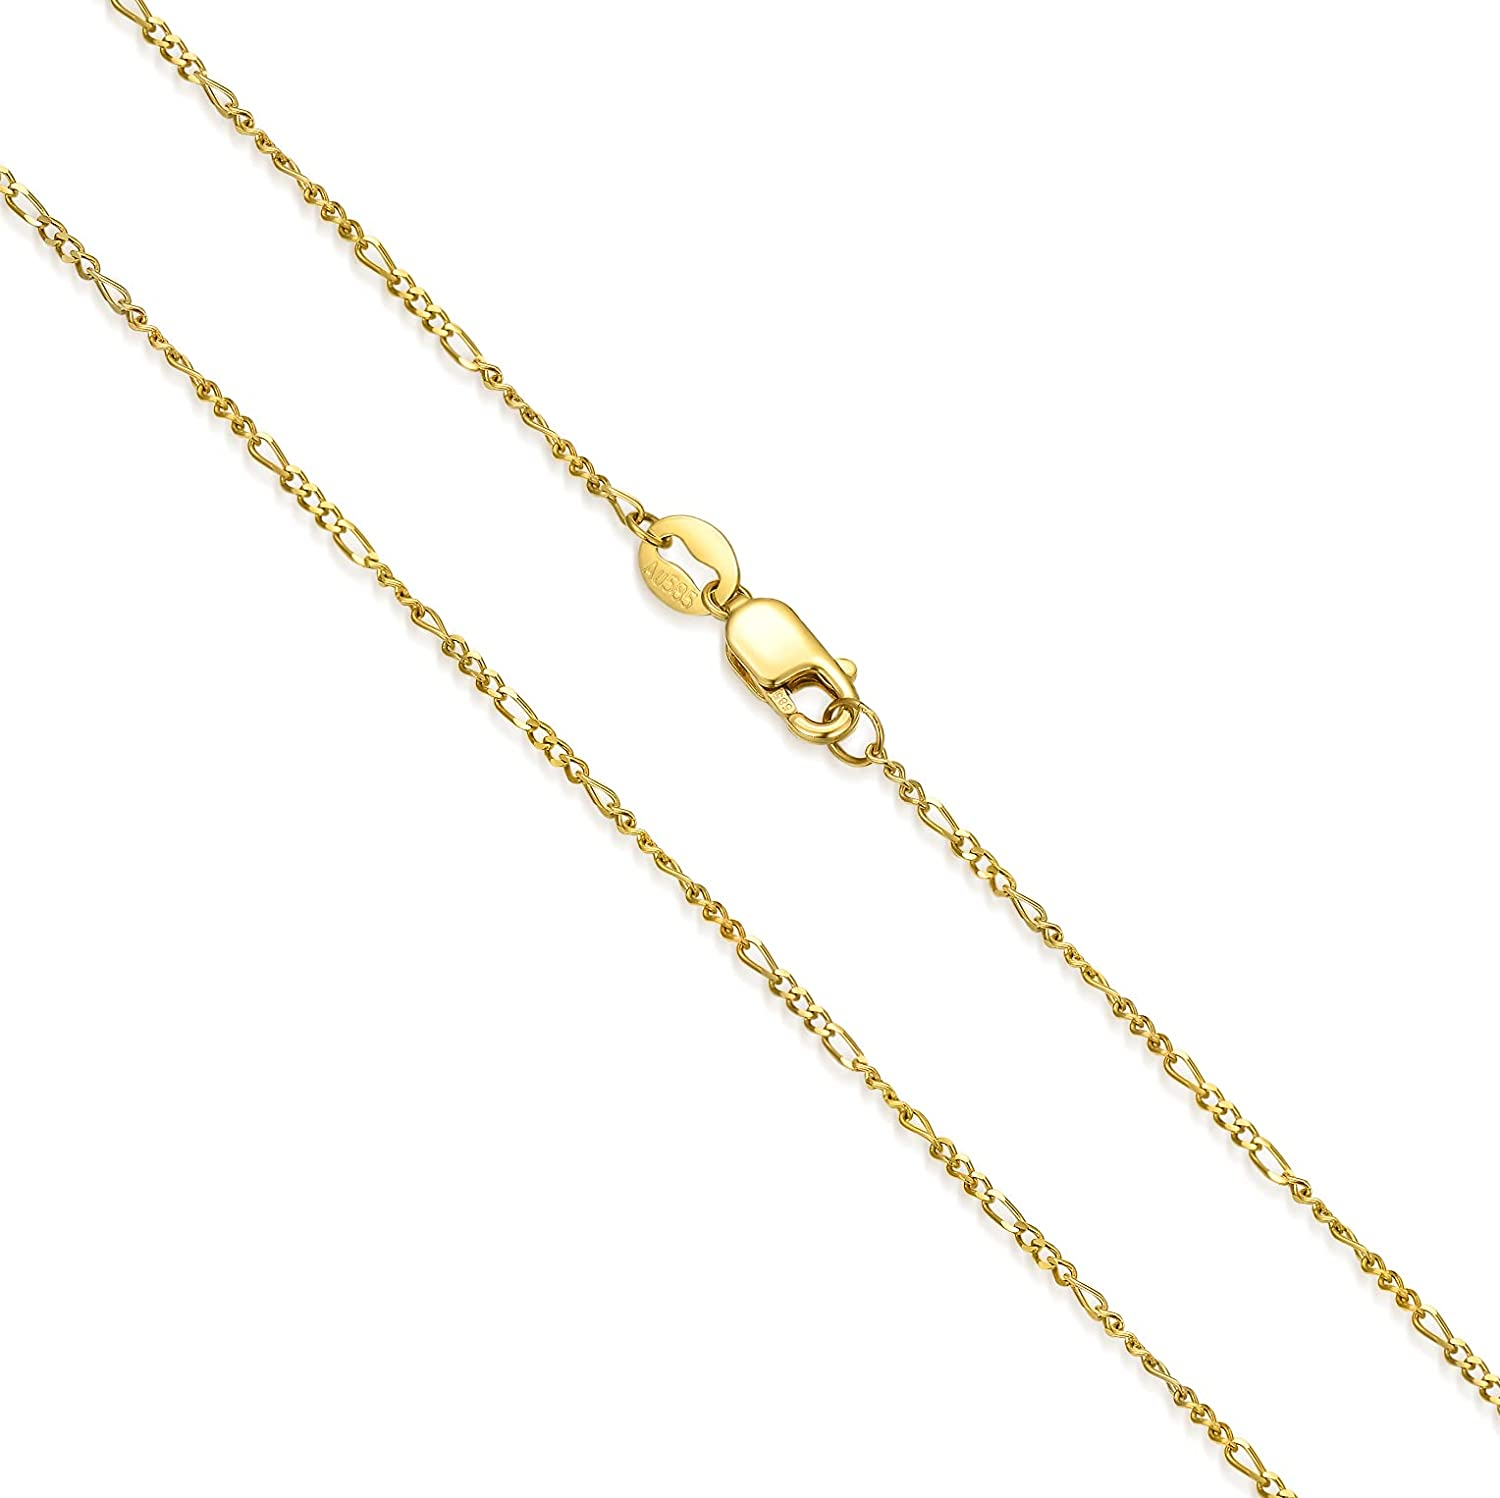 SISGEM 14K Real Gold Figaro Chain Necklace with Lobster Claw Clasp,Yellow Gold 1.13 mm Link Figaro Chain Necklace Fine Jewelry Gifts For Women 16'' 18'' 20'' 22'' 24''